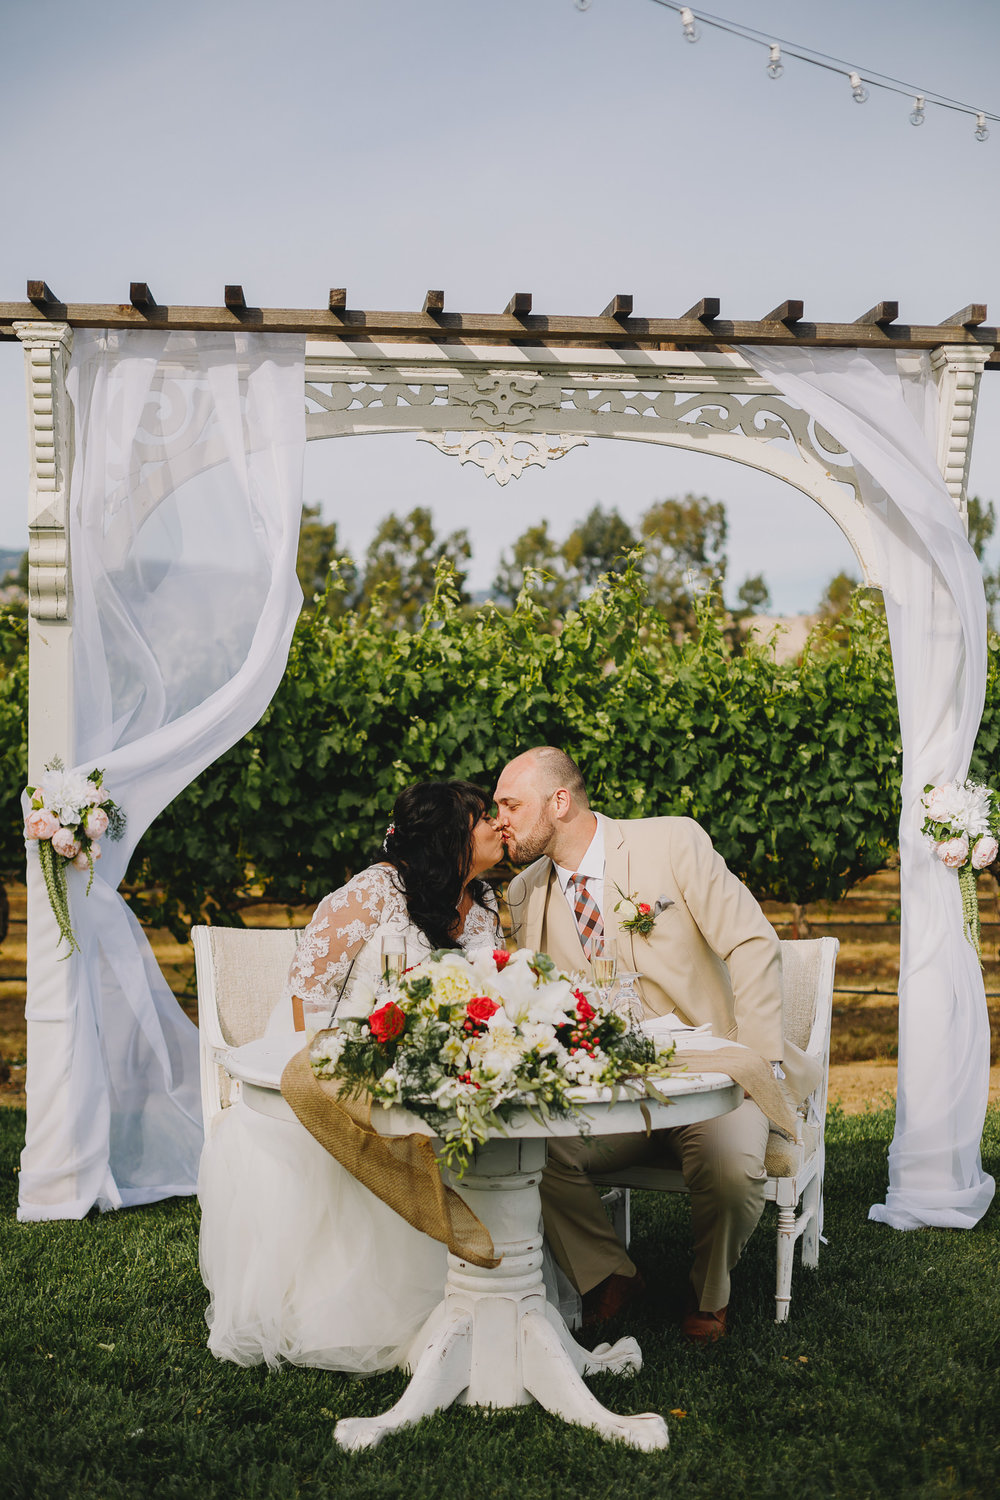 Archer Inspired Photography Fitz Place San Martin Wedding Lifestyle Documentary Affordable Photographer South Bay-404.jpg